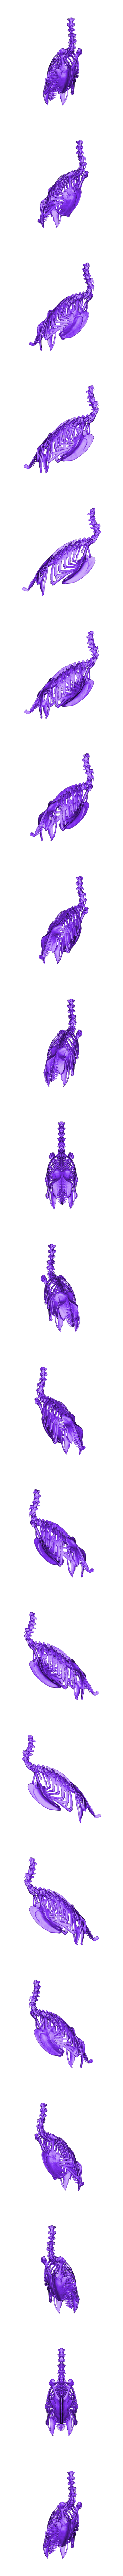 NEW-Spine-chest-repaired-repaired-repaired.stl Download STL file Macow Skeleton • 3D printing template, LordLilapause